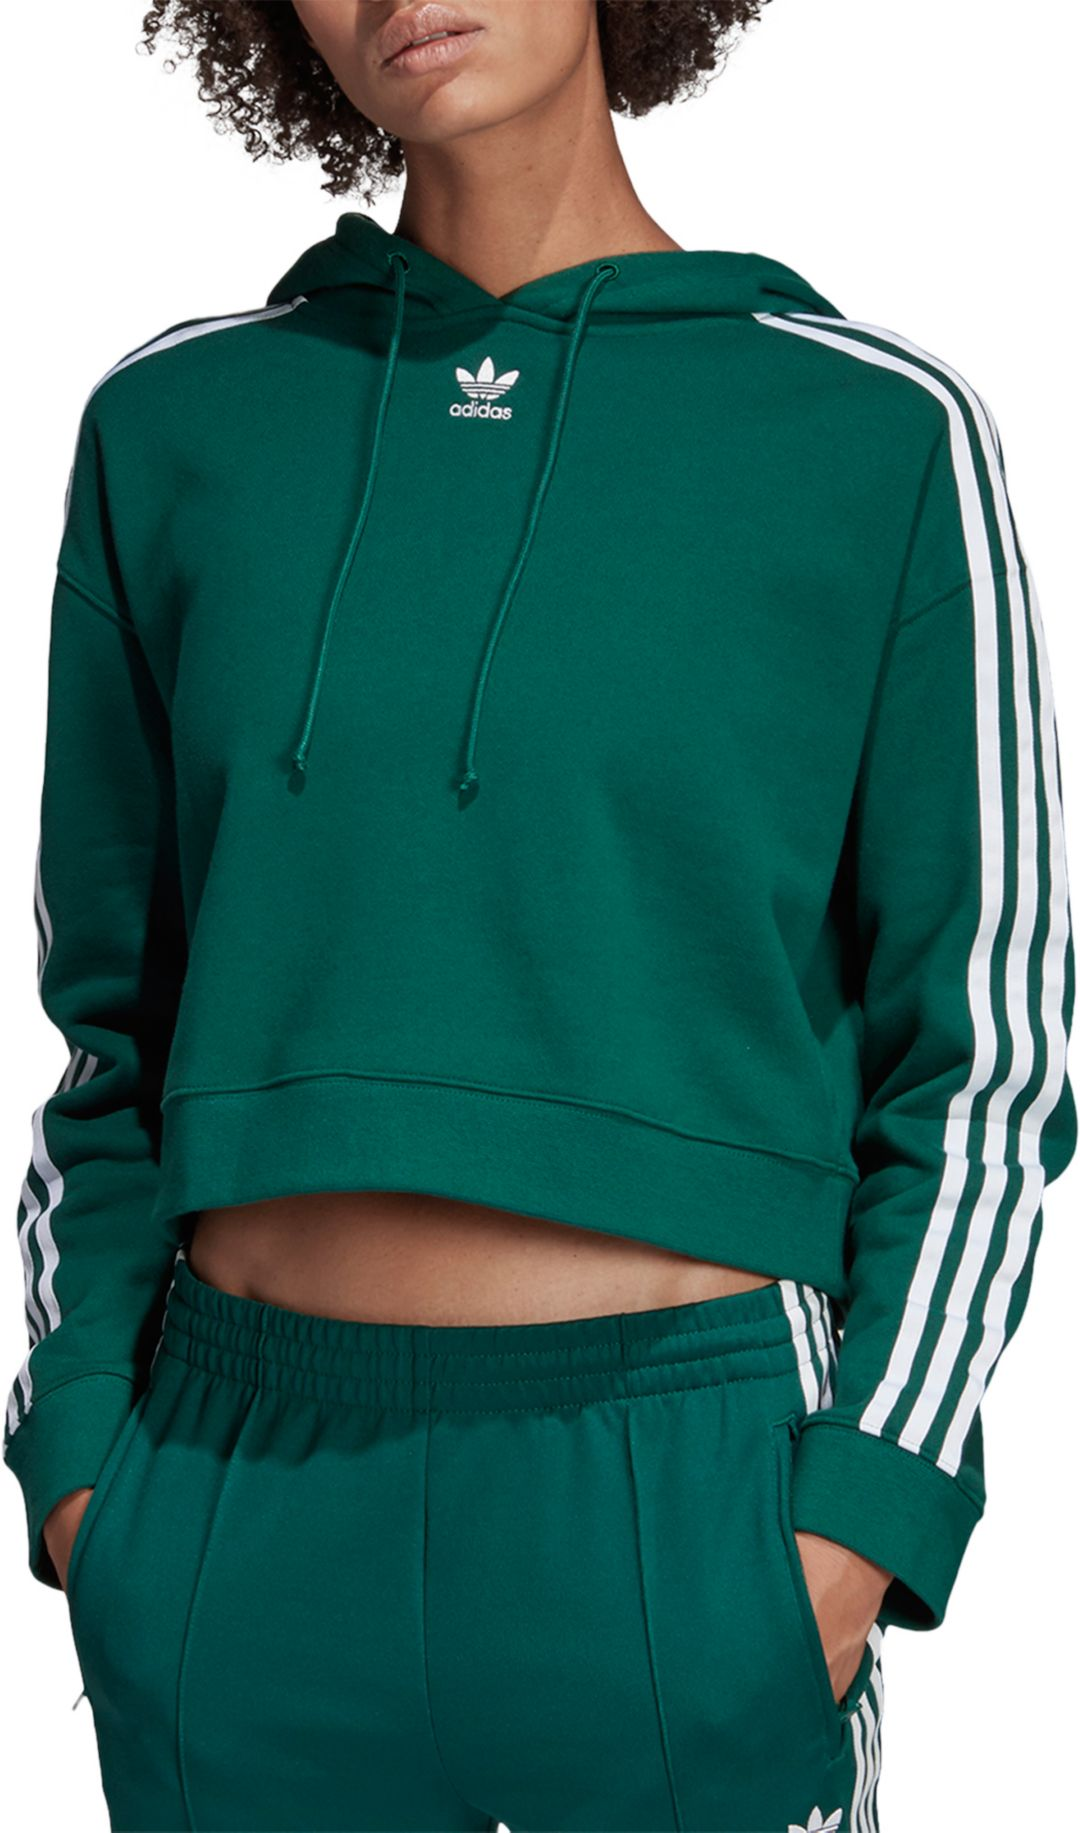 6c6d6b6243ddc adidas Originals Women's Cropped Hoodie | DICK'S Sporting Goods